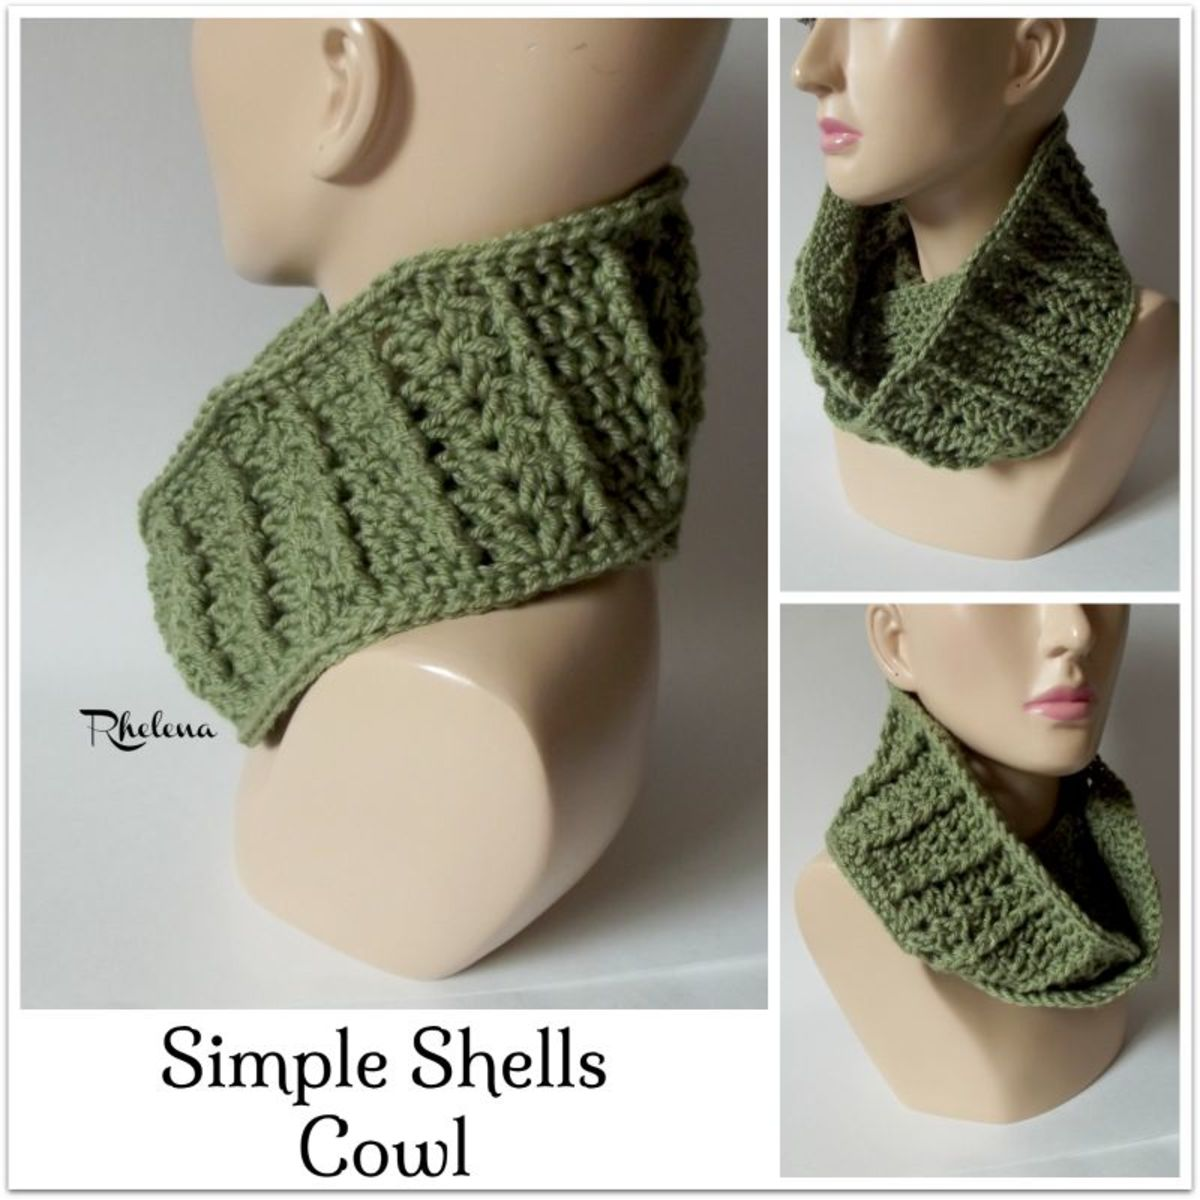 FREE Cowl Crochet Pattern: http://crochetncrafts.com/simple-shells-cowl/